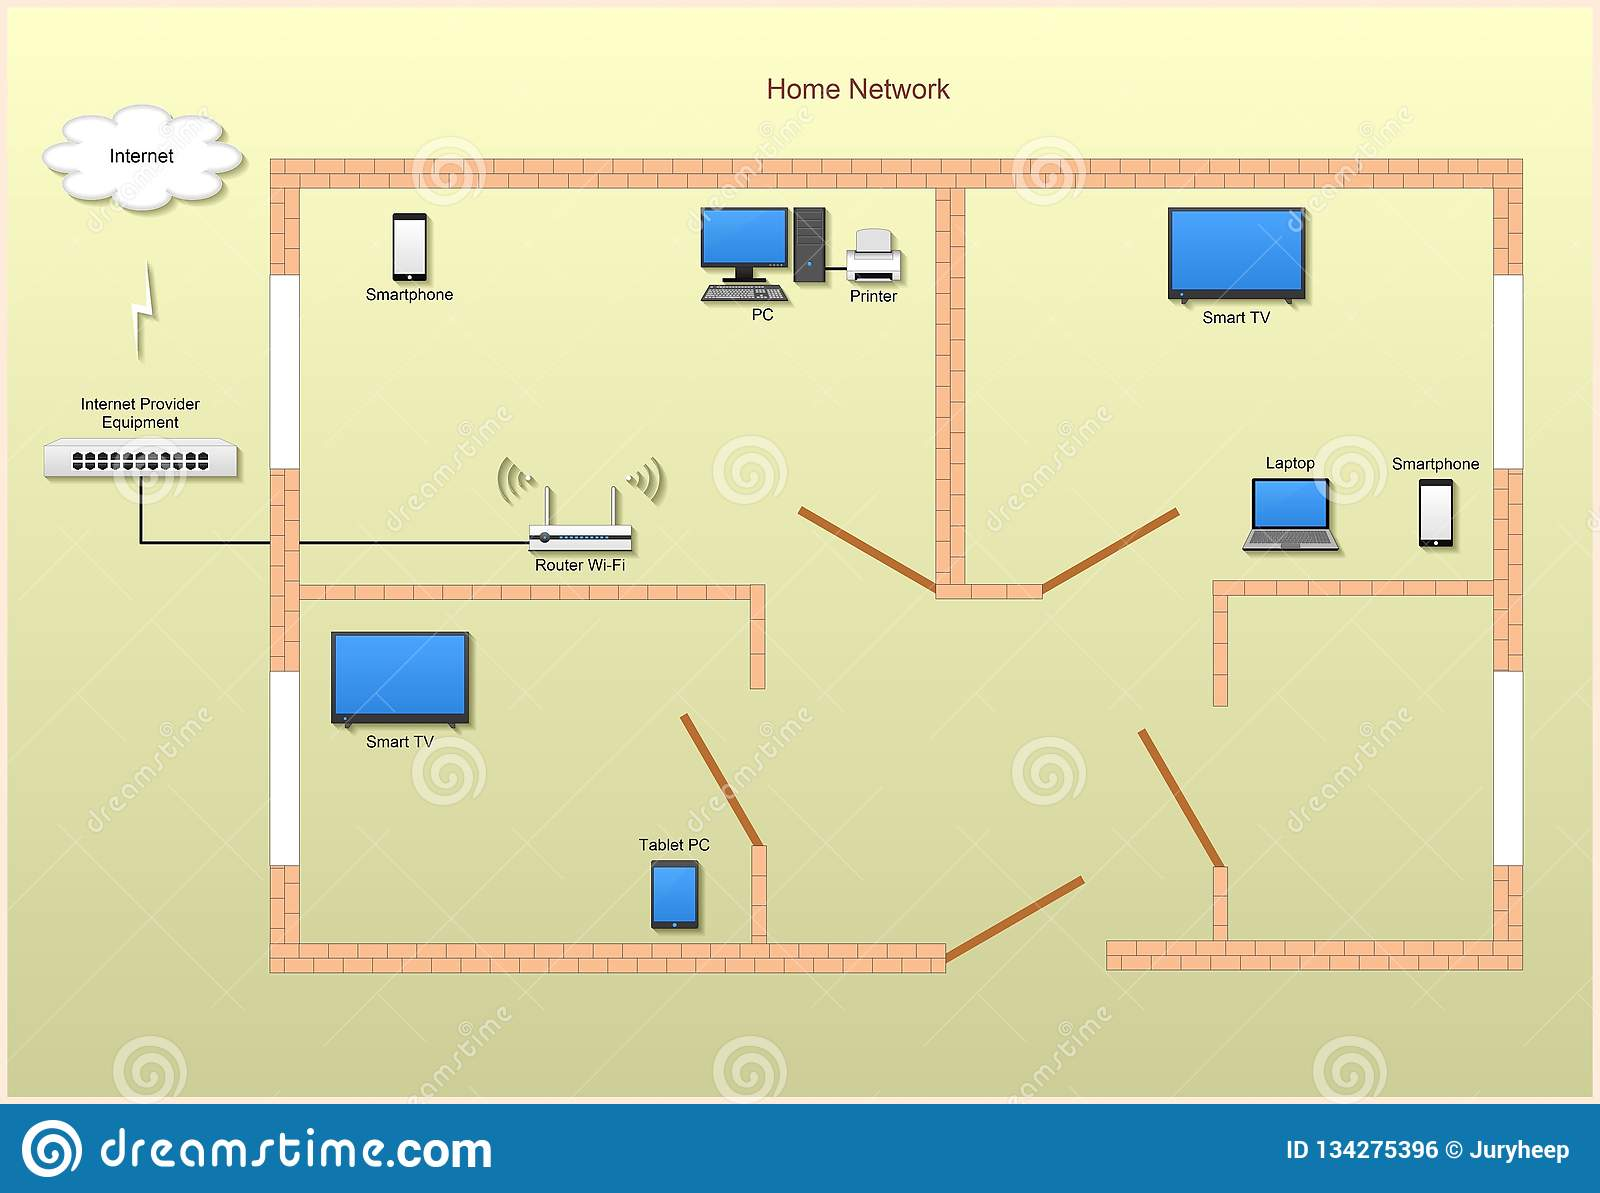 hight resolution of home network diagram with computers laptop router smartphone printer smart tv access to internet and cloud storage